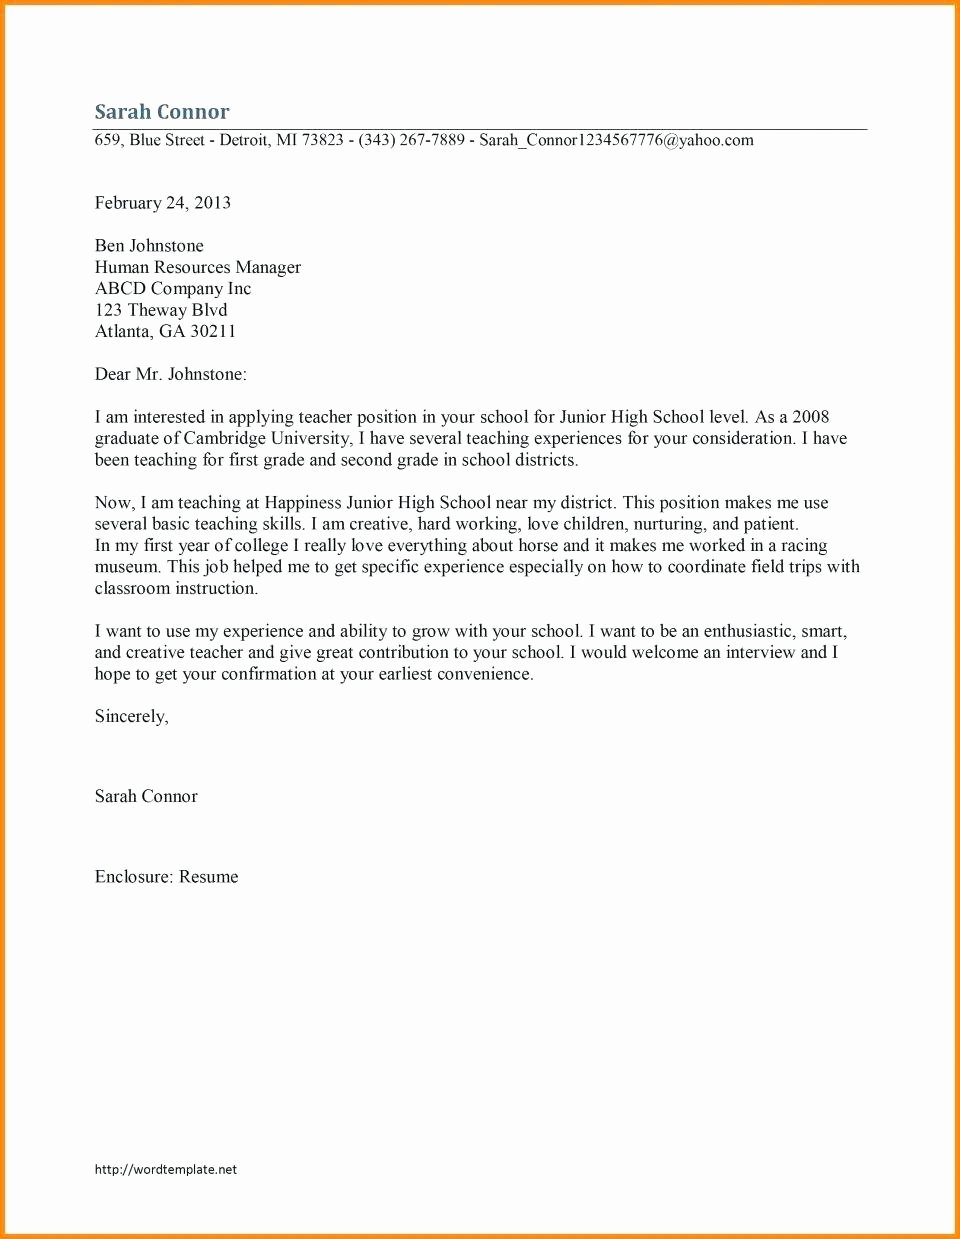 Teacher Cover Letters with Experience Lovely 10 Sample Teacher Cover Letter with Experience